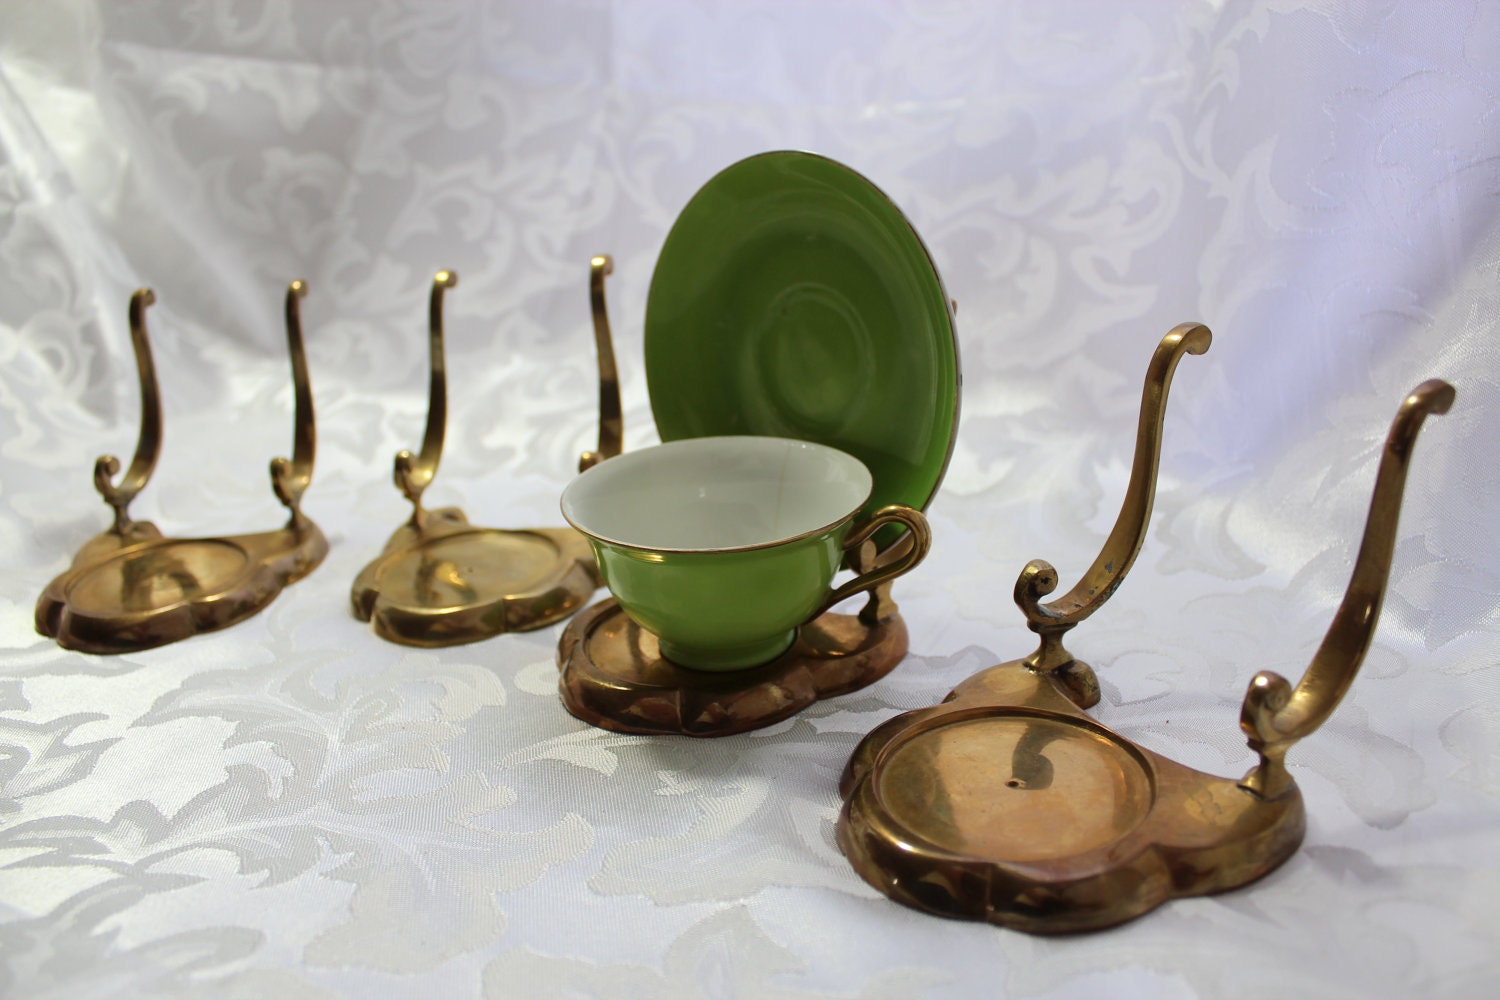 Teacup and Saucer Holders, Cup and Saucer Hangers Fine Home Displays has a huge variety of cup and saucer hangers and stands available so that you can get your treasured collectibles on display! We're really sorry.